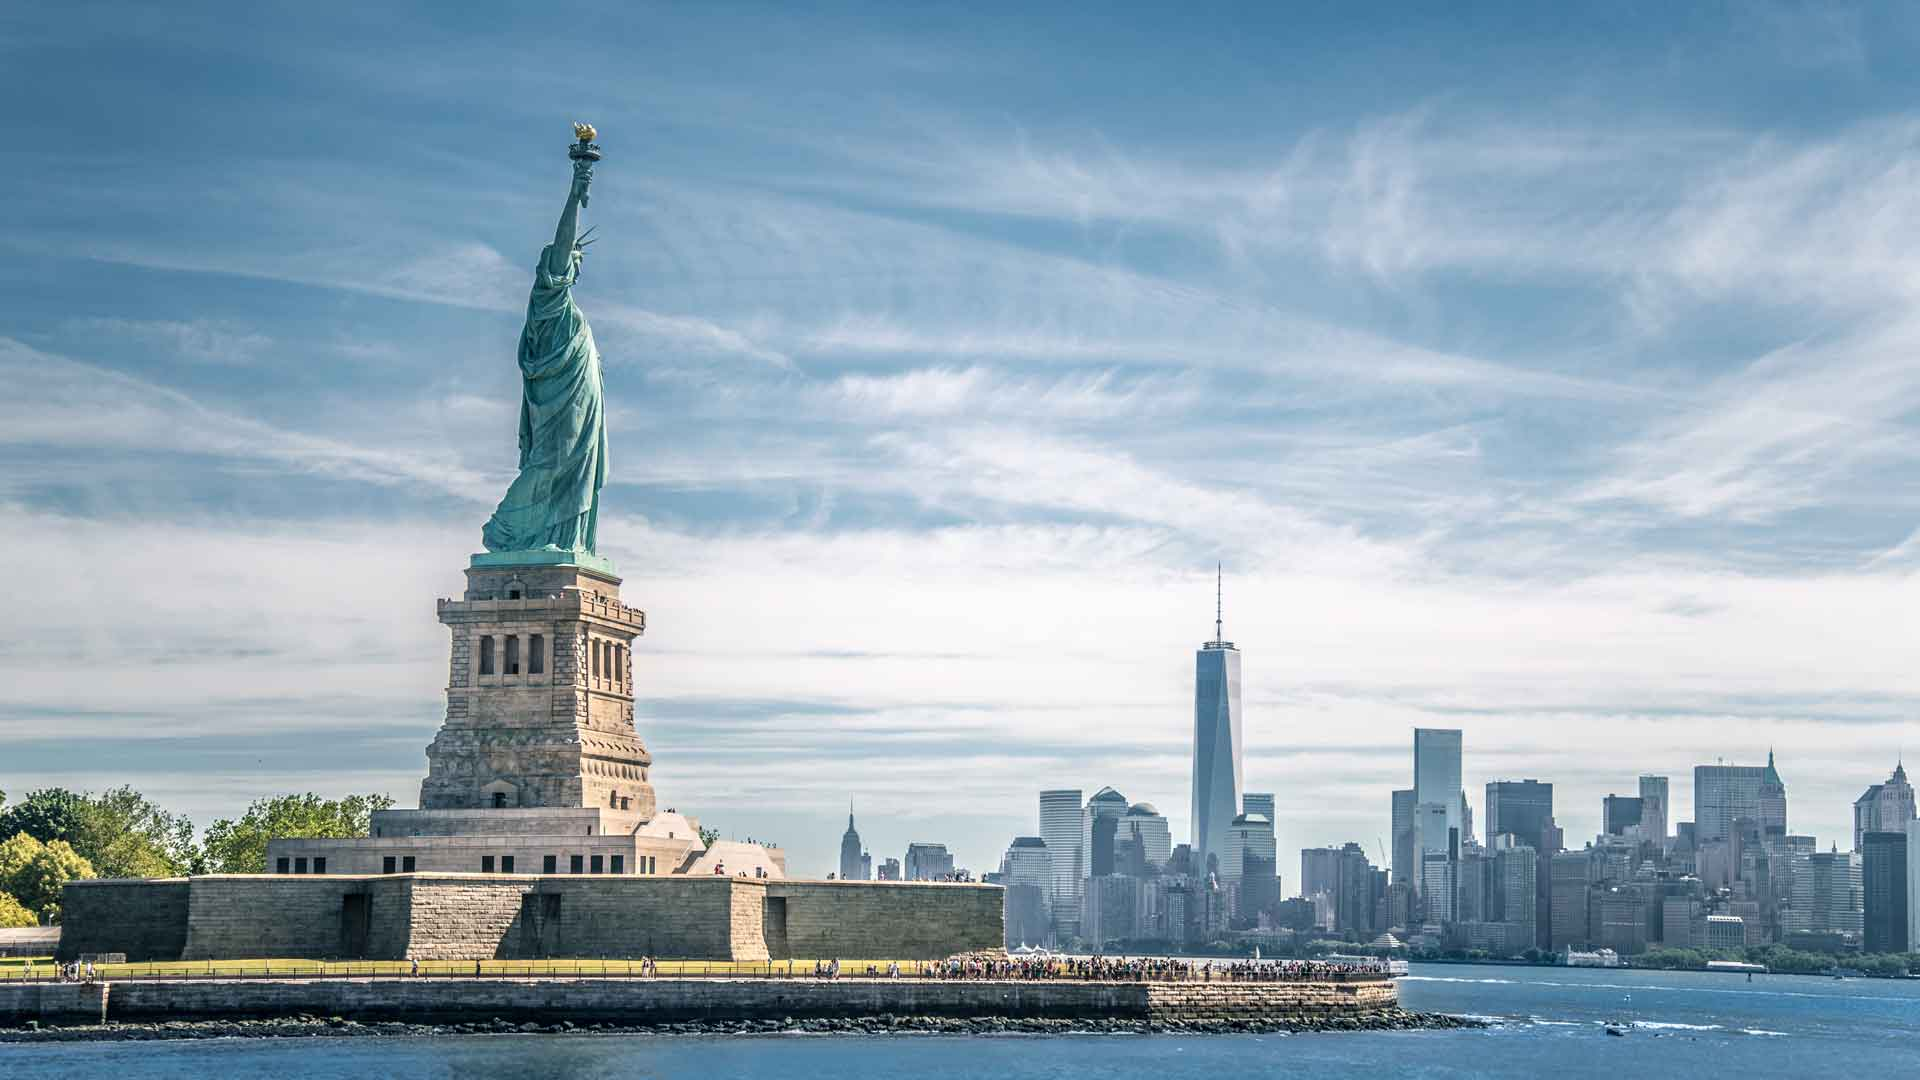 Statue-of-Liberty-Hillsdale-Dialogues.jpg